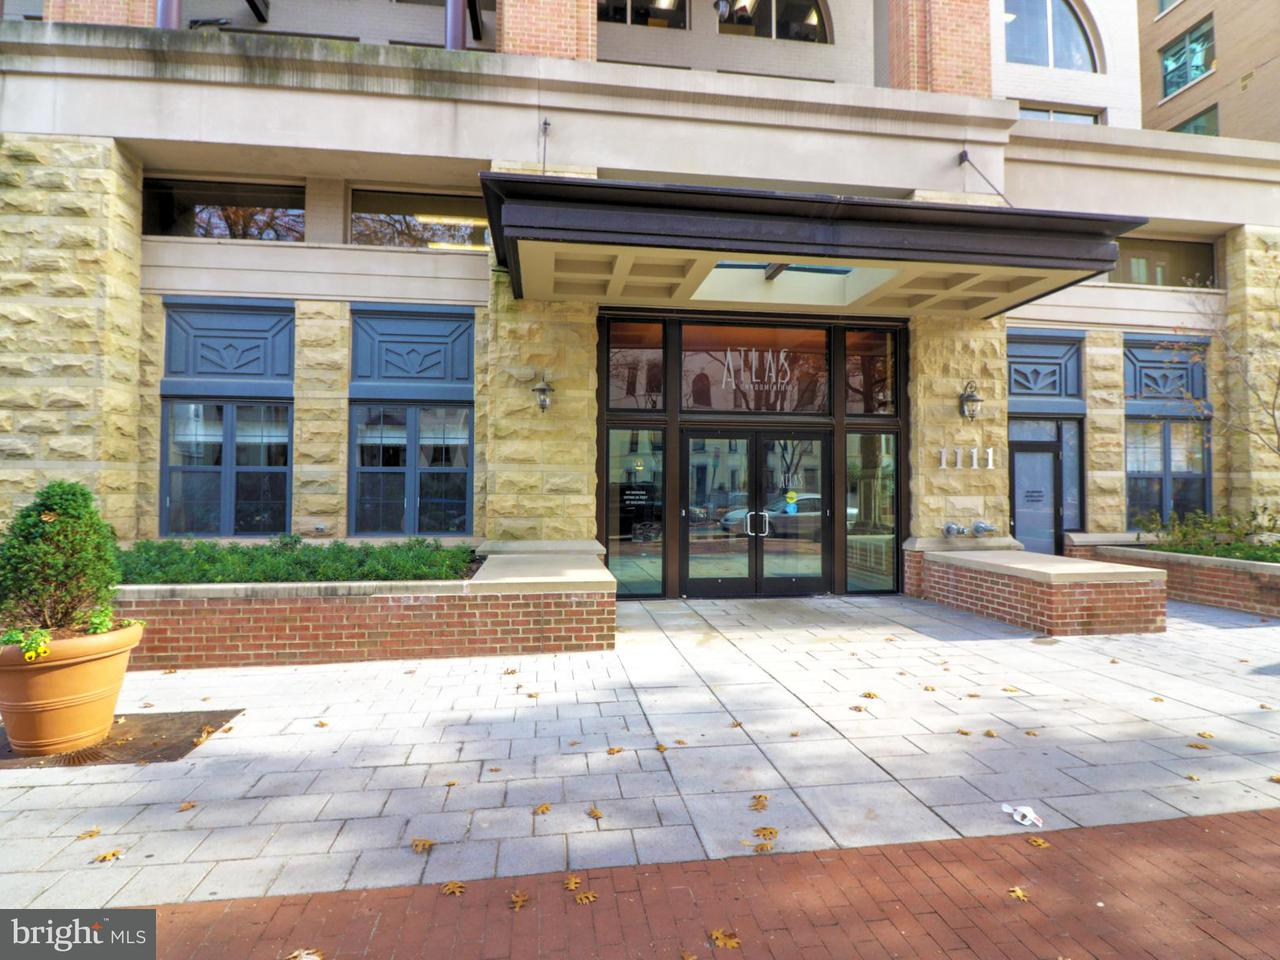 Townhouse for Sale at 1111 25TH ST NW #717 1111 25TH ST NW #717 Washington, District Of Columbia 20037 United States